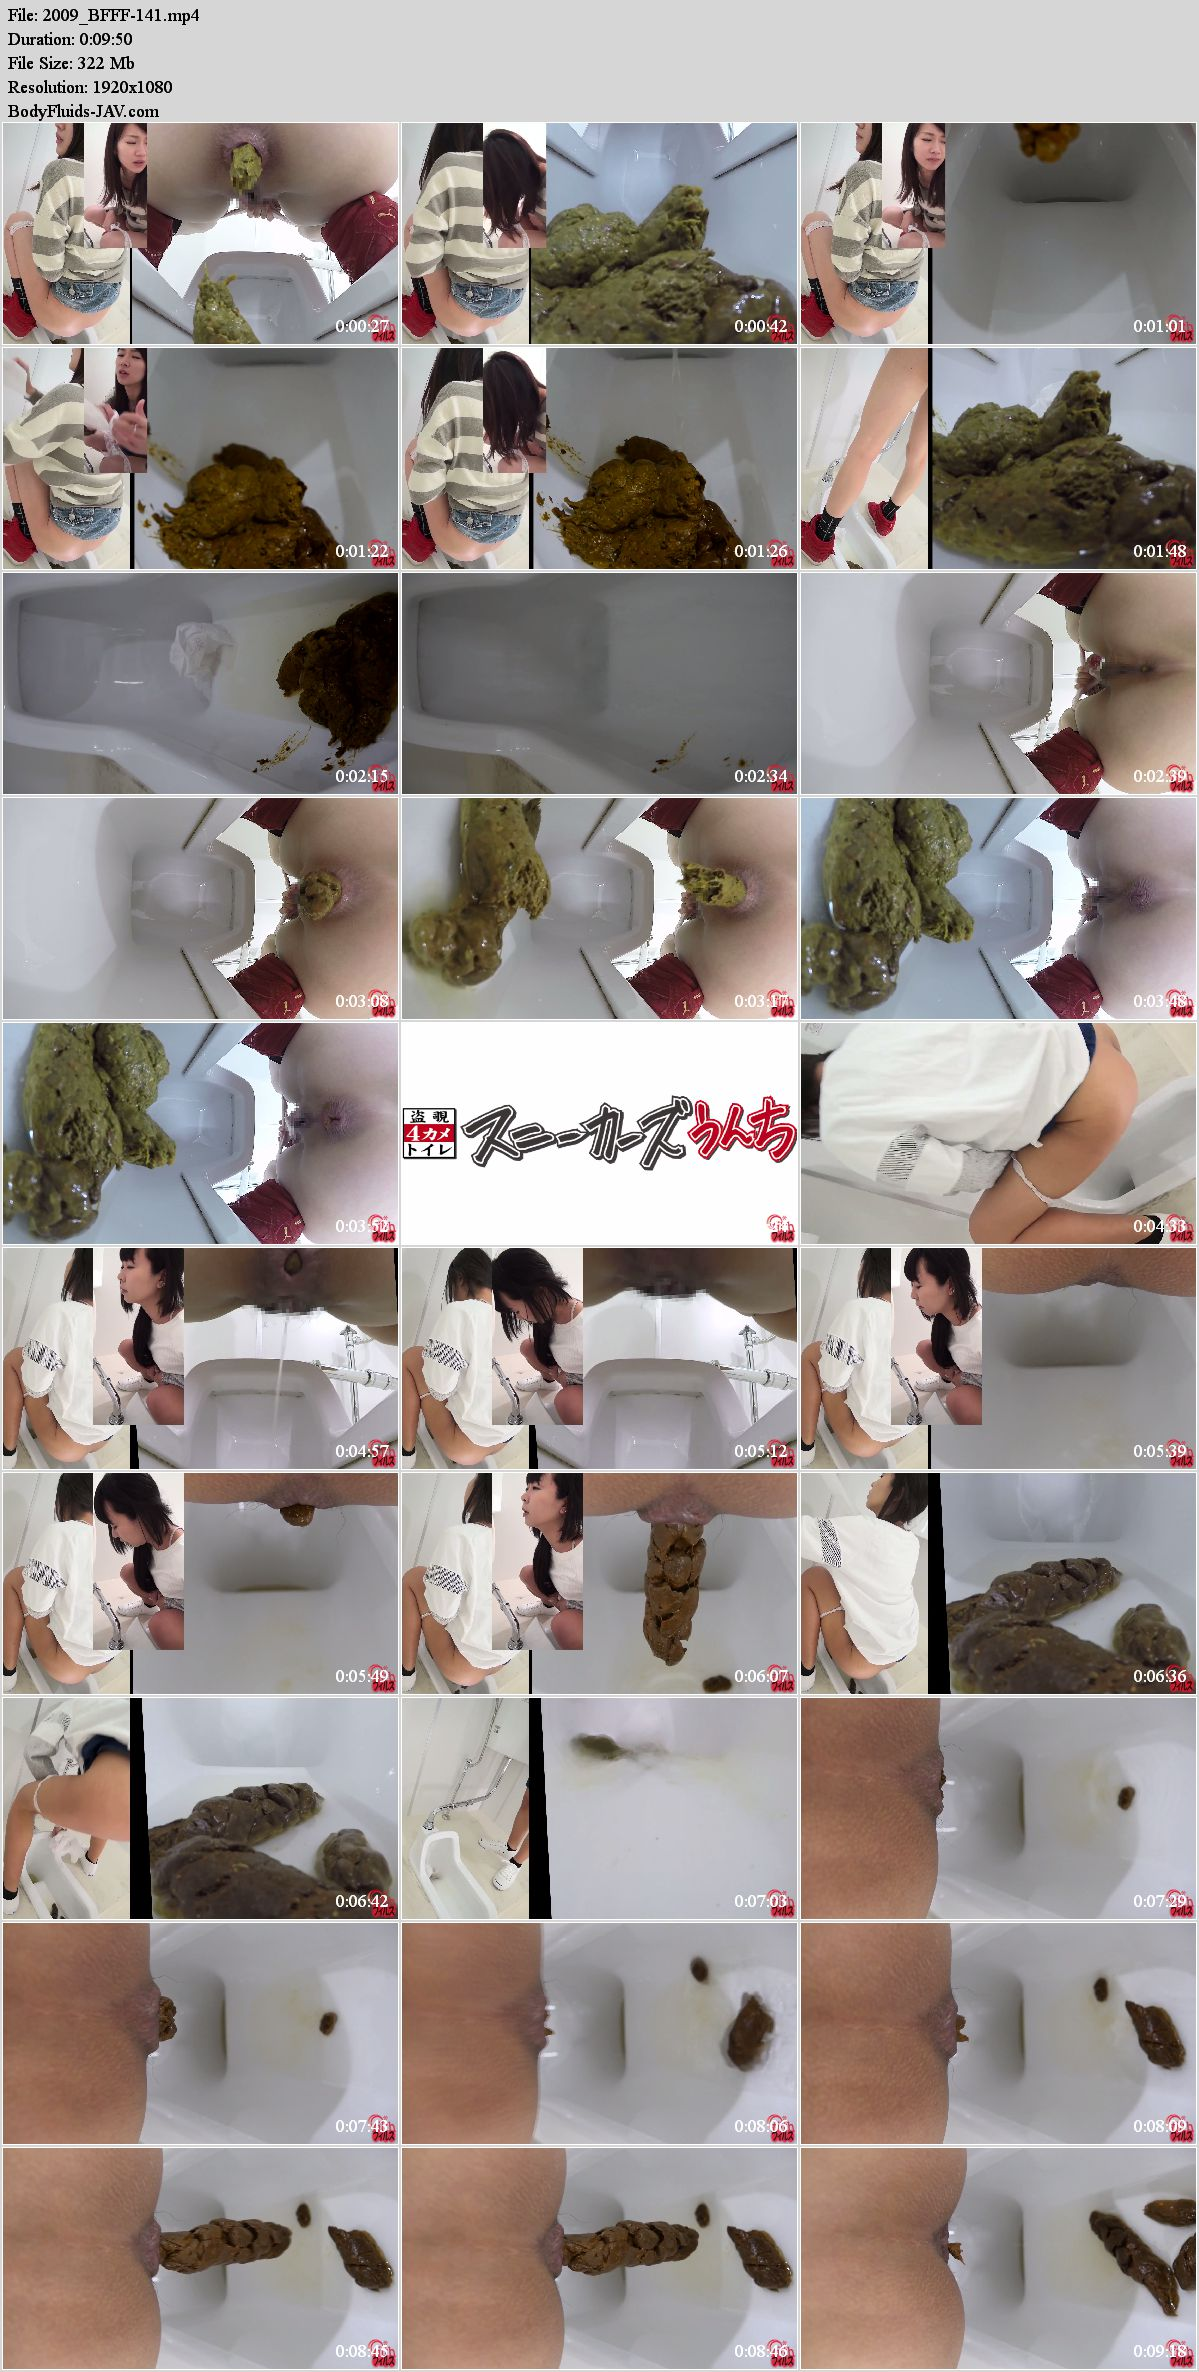 BFFF-141 Public toilet and close-up defecation girls. (HD 1080p)